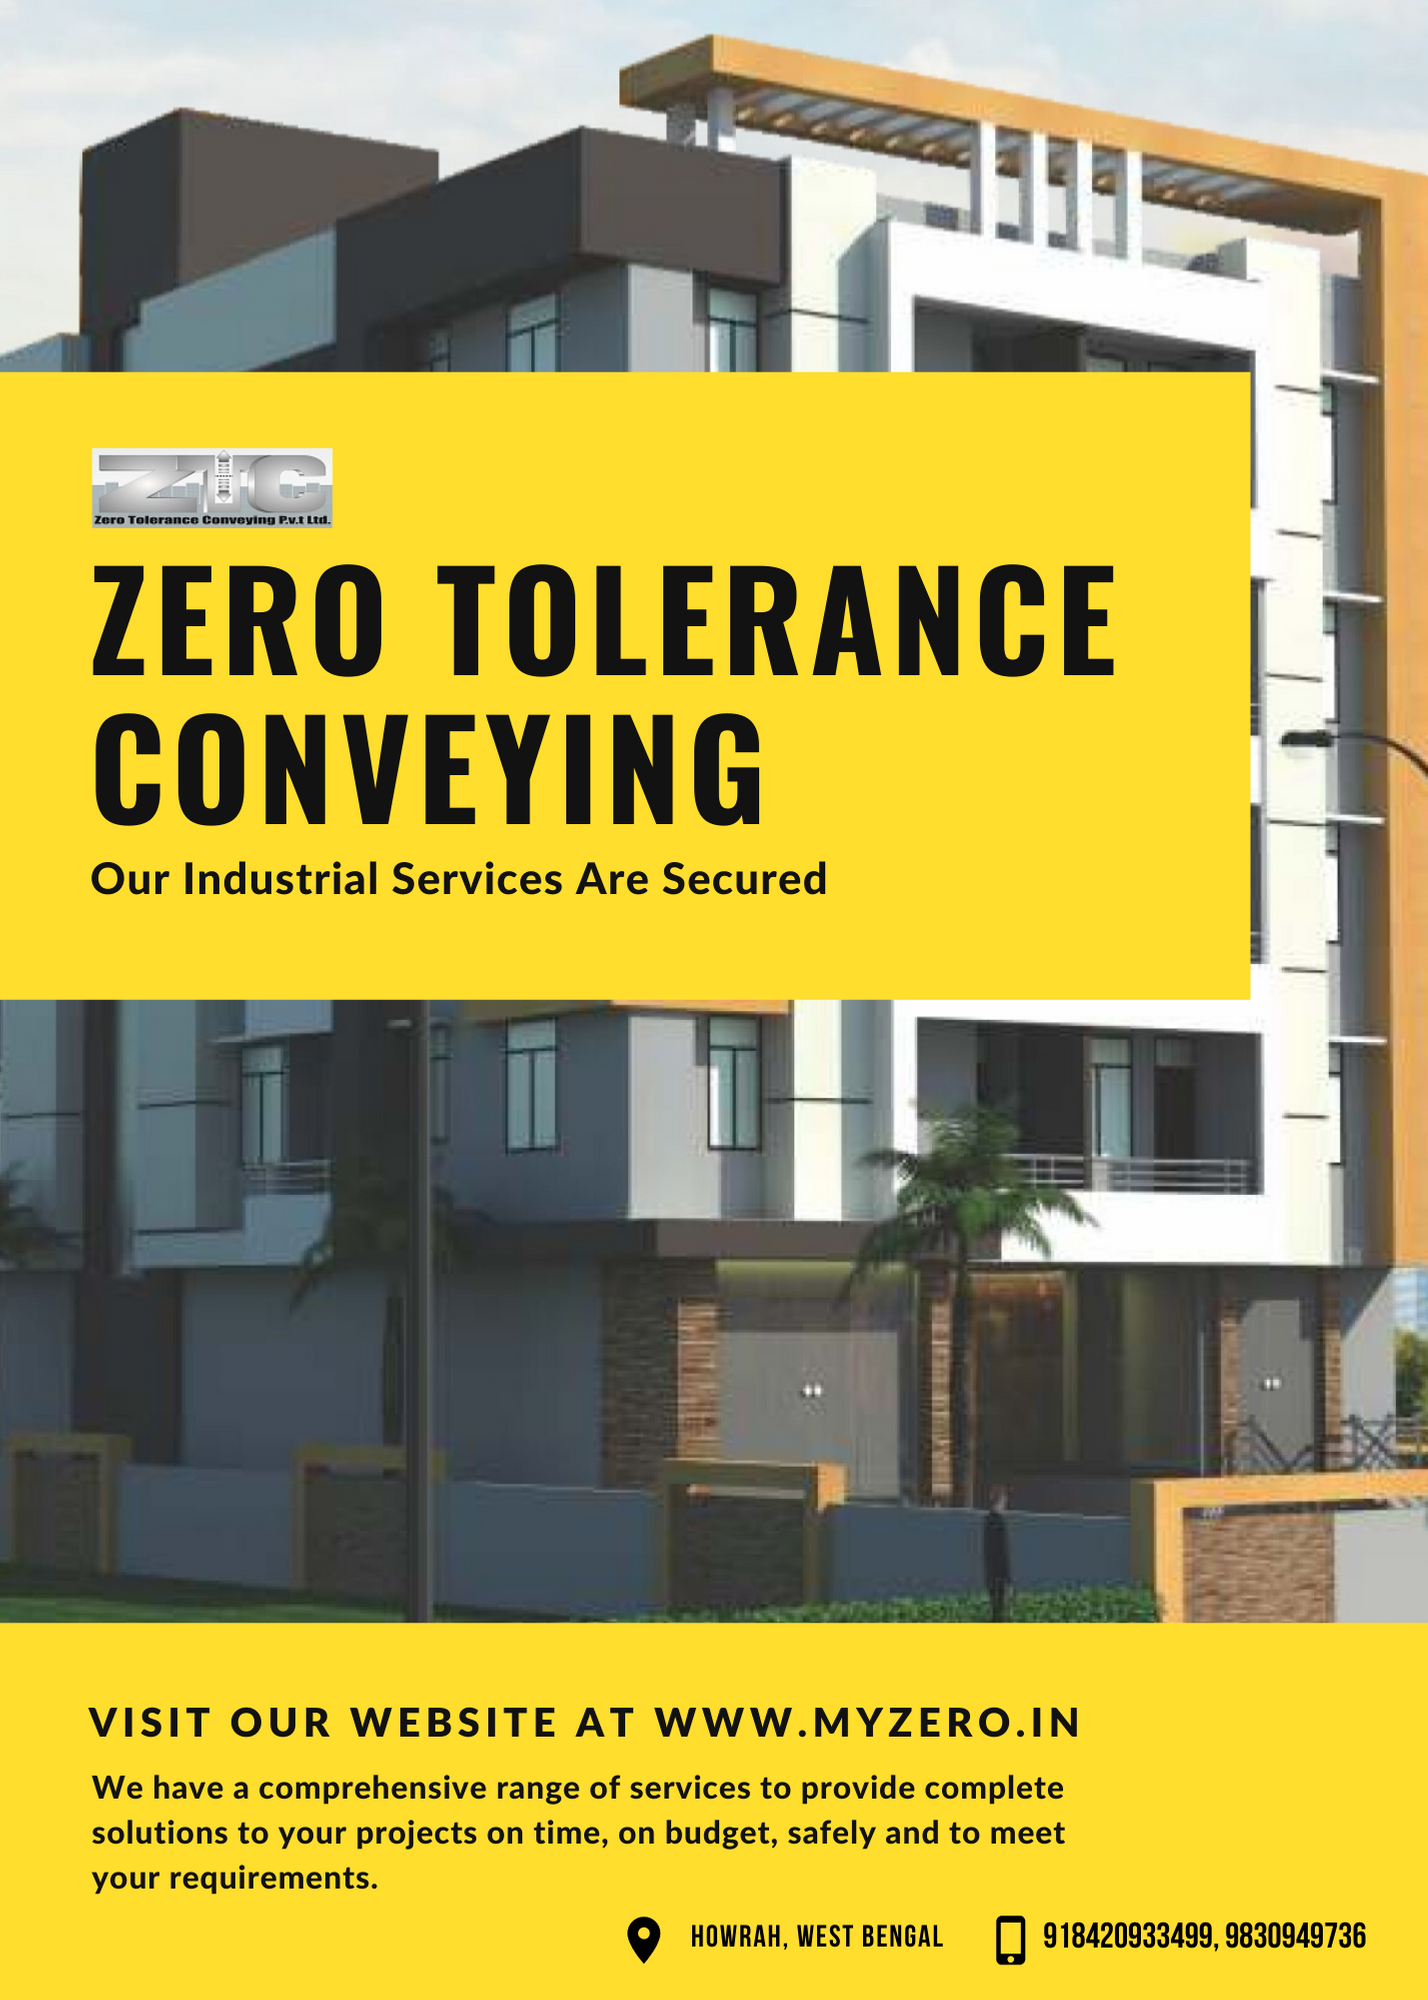 Zero Tolerance Conveying Pvt Ltd